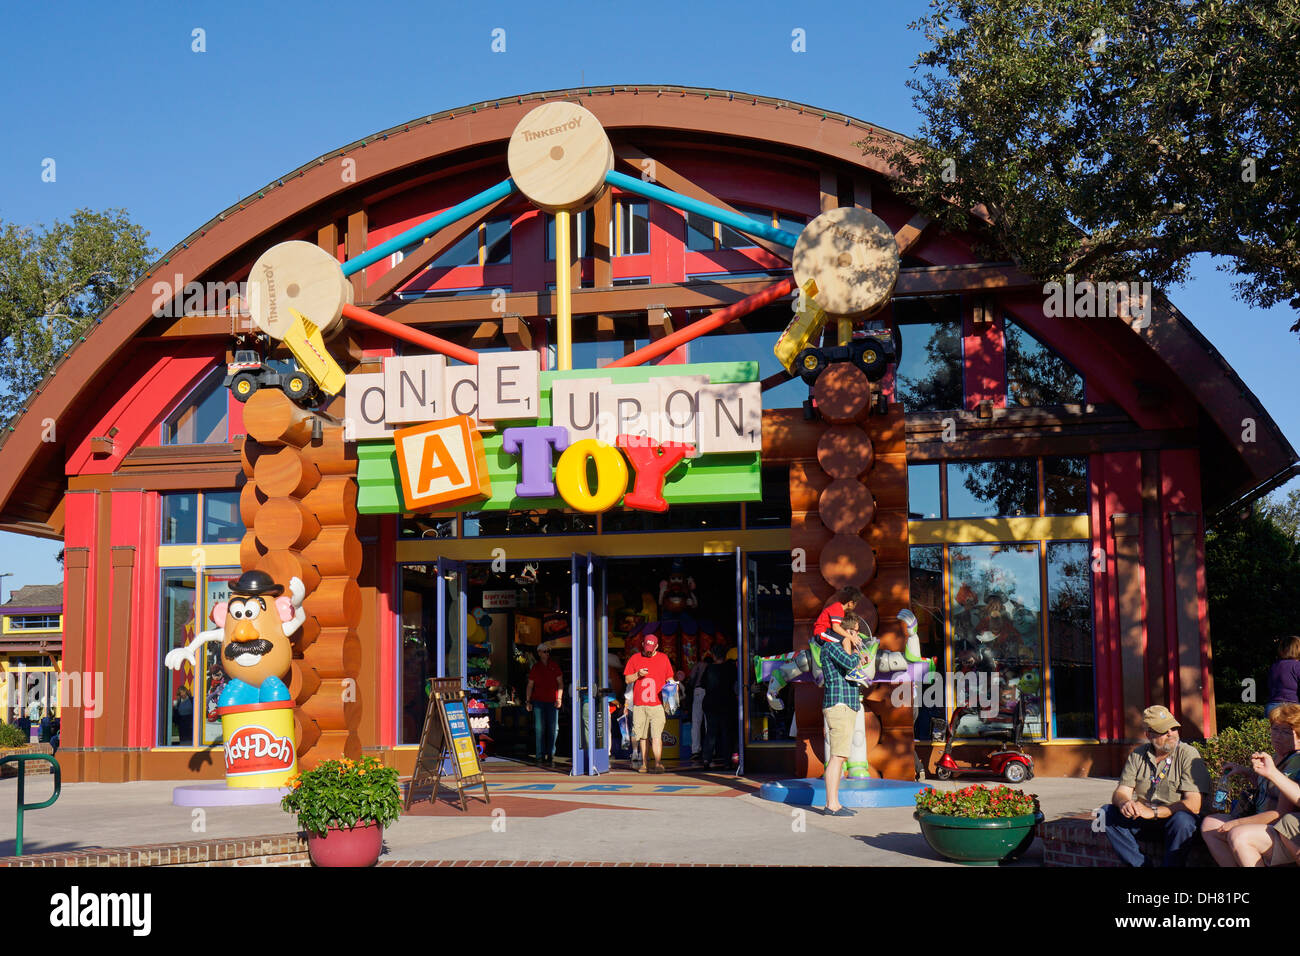 Once Upon A Toy Shop Store at Downtown Disney Marketplace